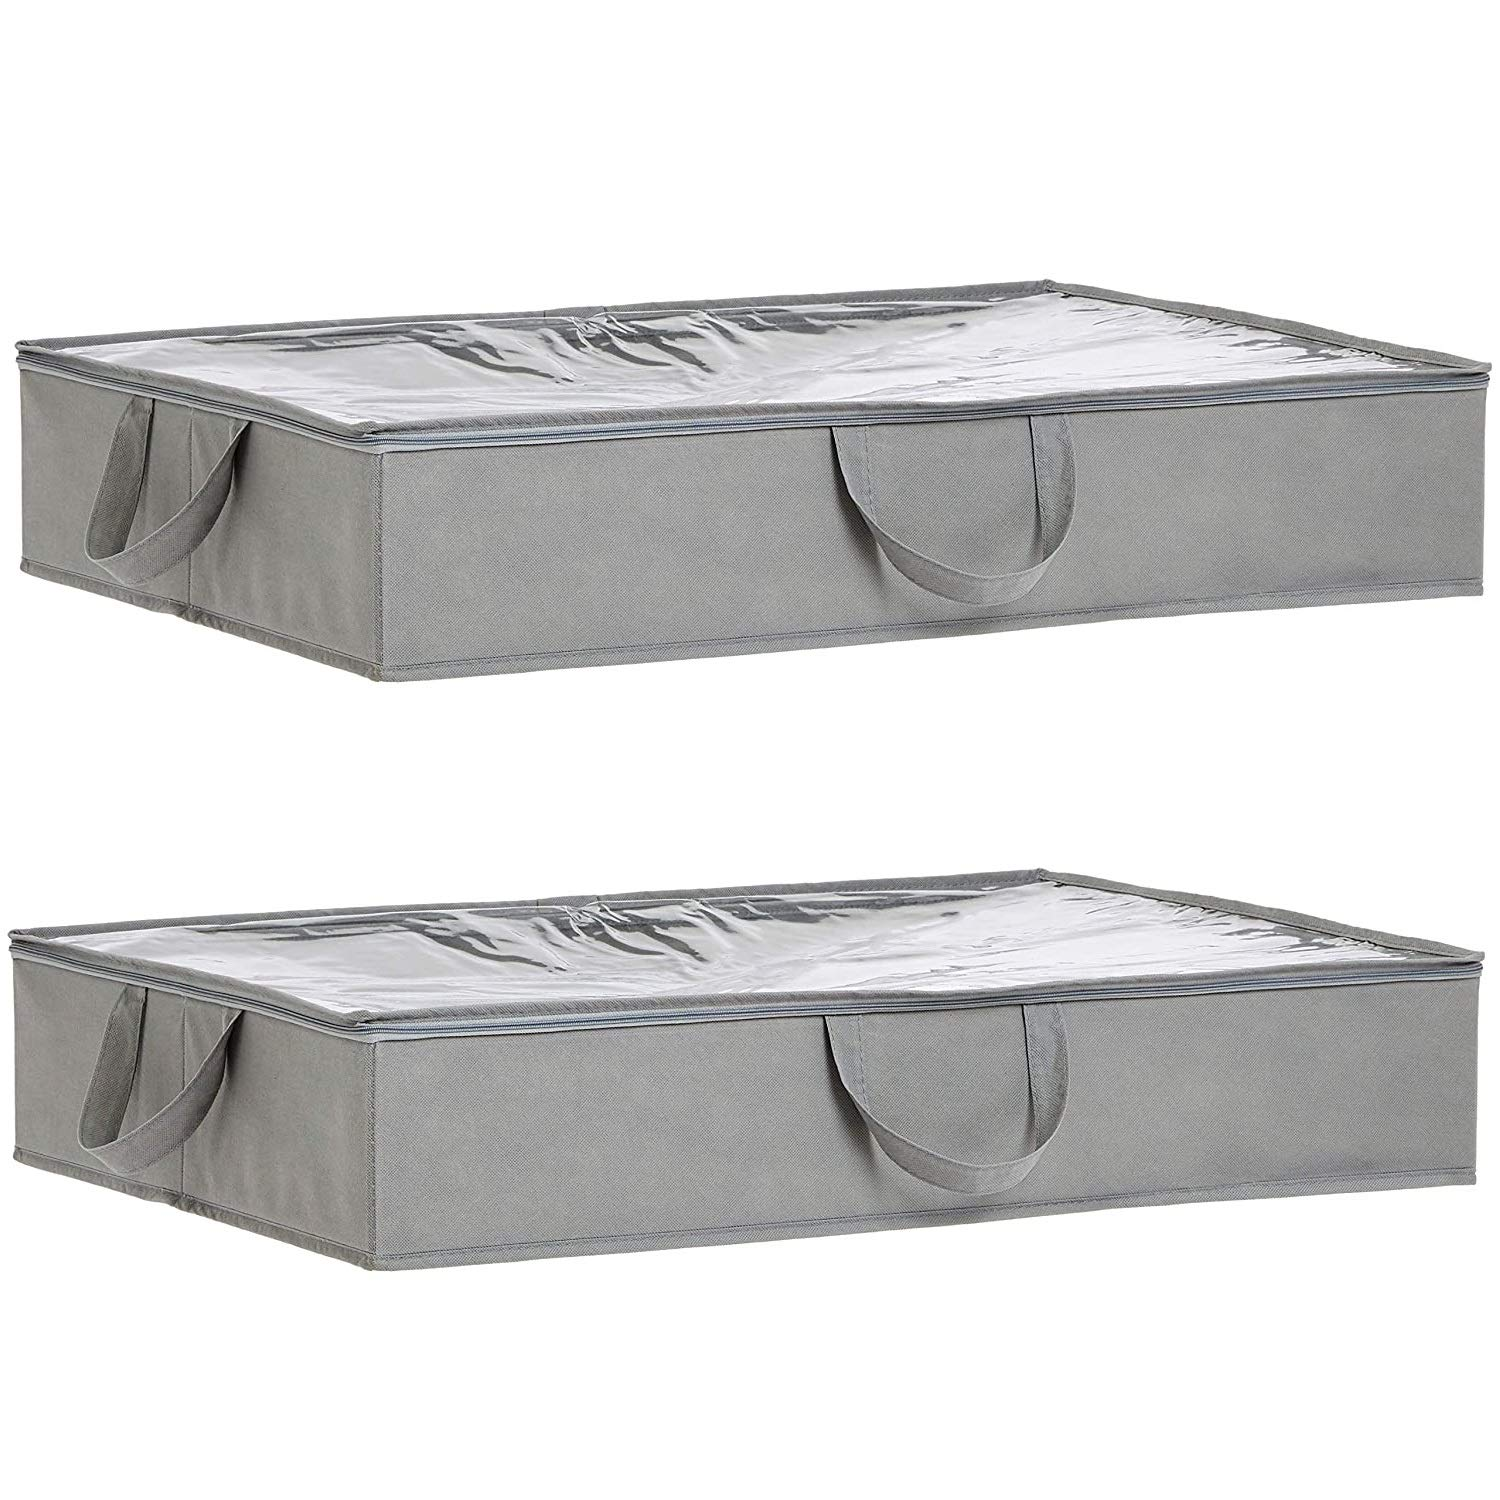 Amazon Basics Fabric Under Bed Storage Bag Organzier with Handles, Set of 2